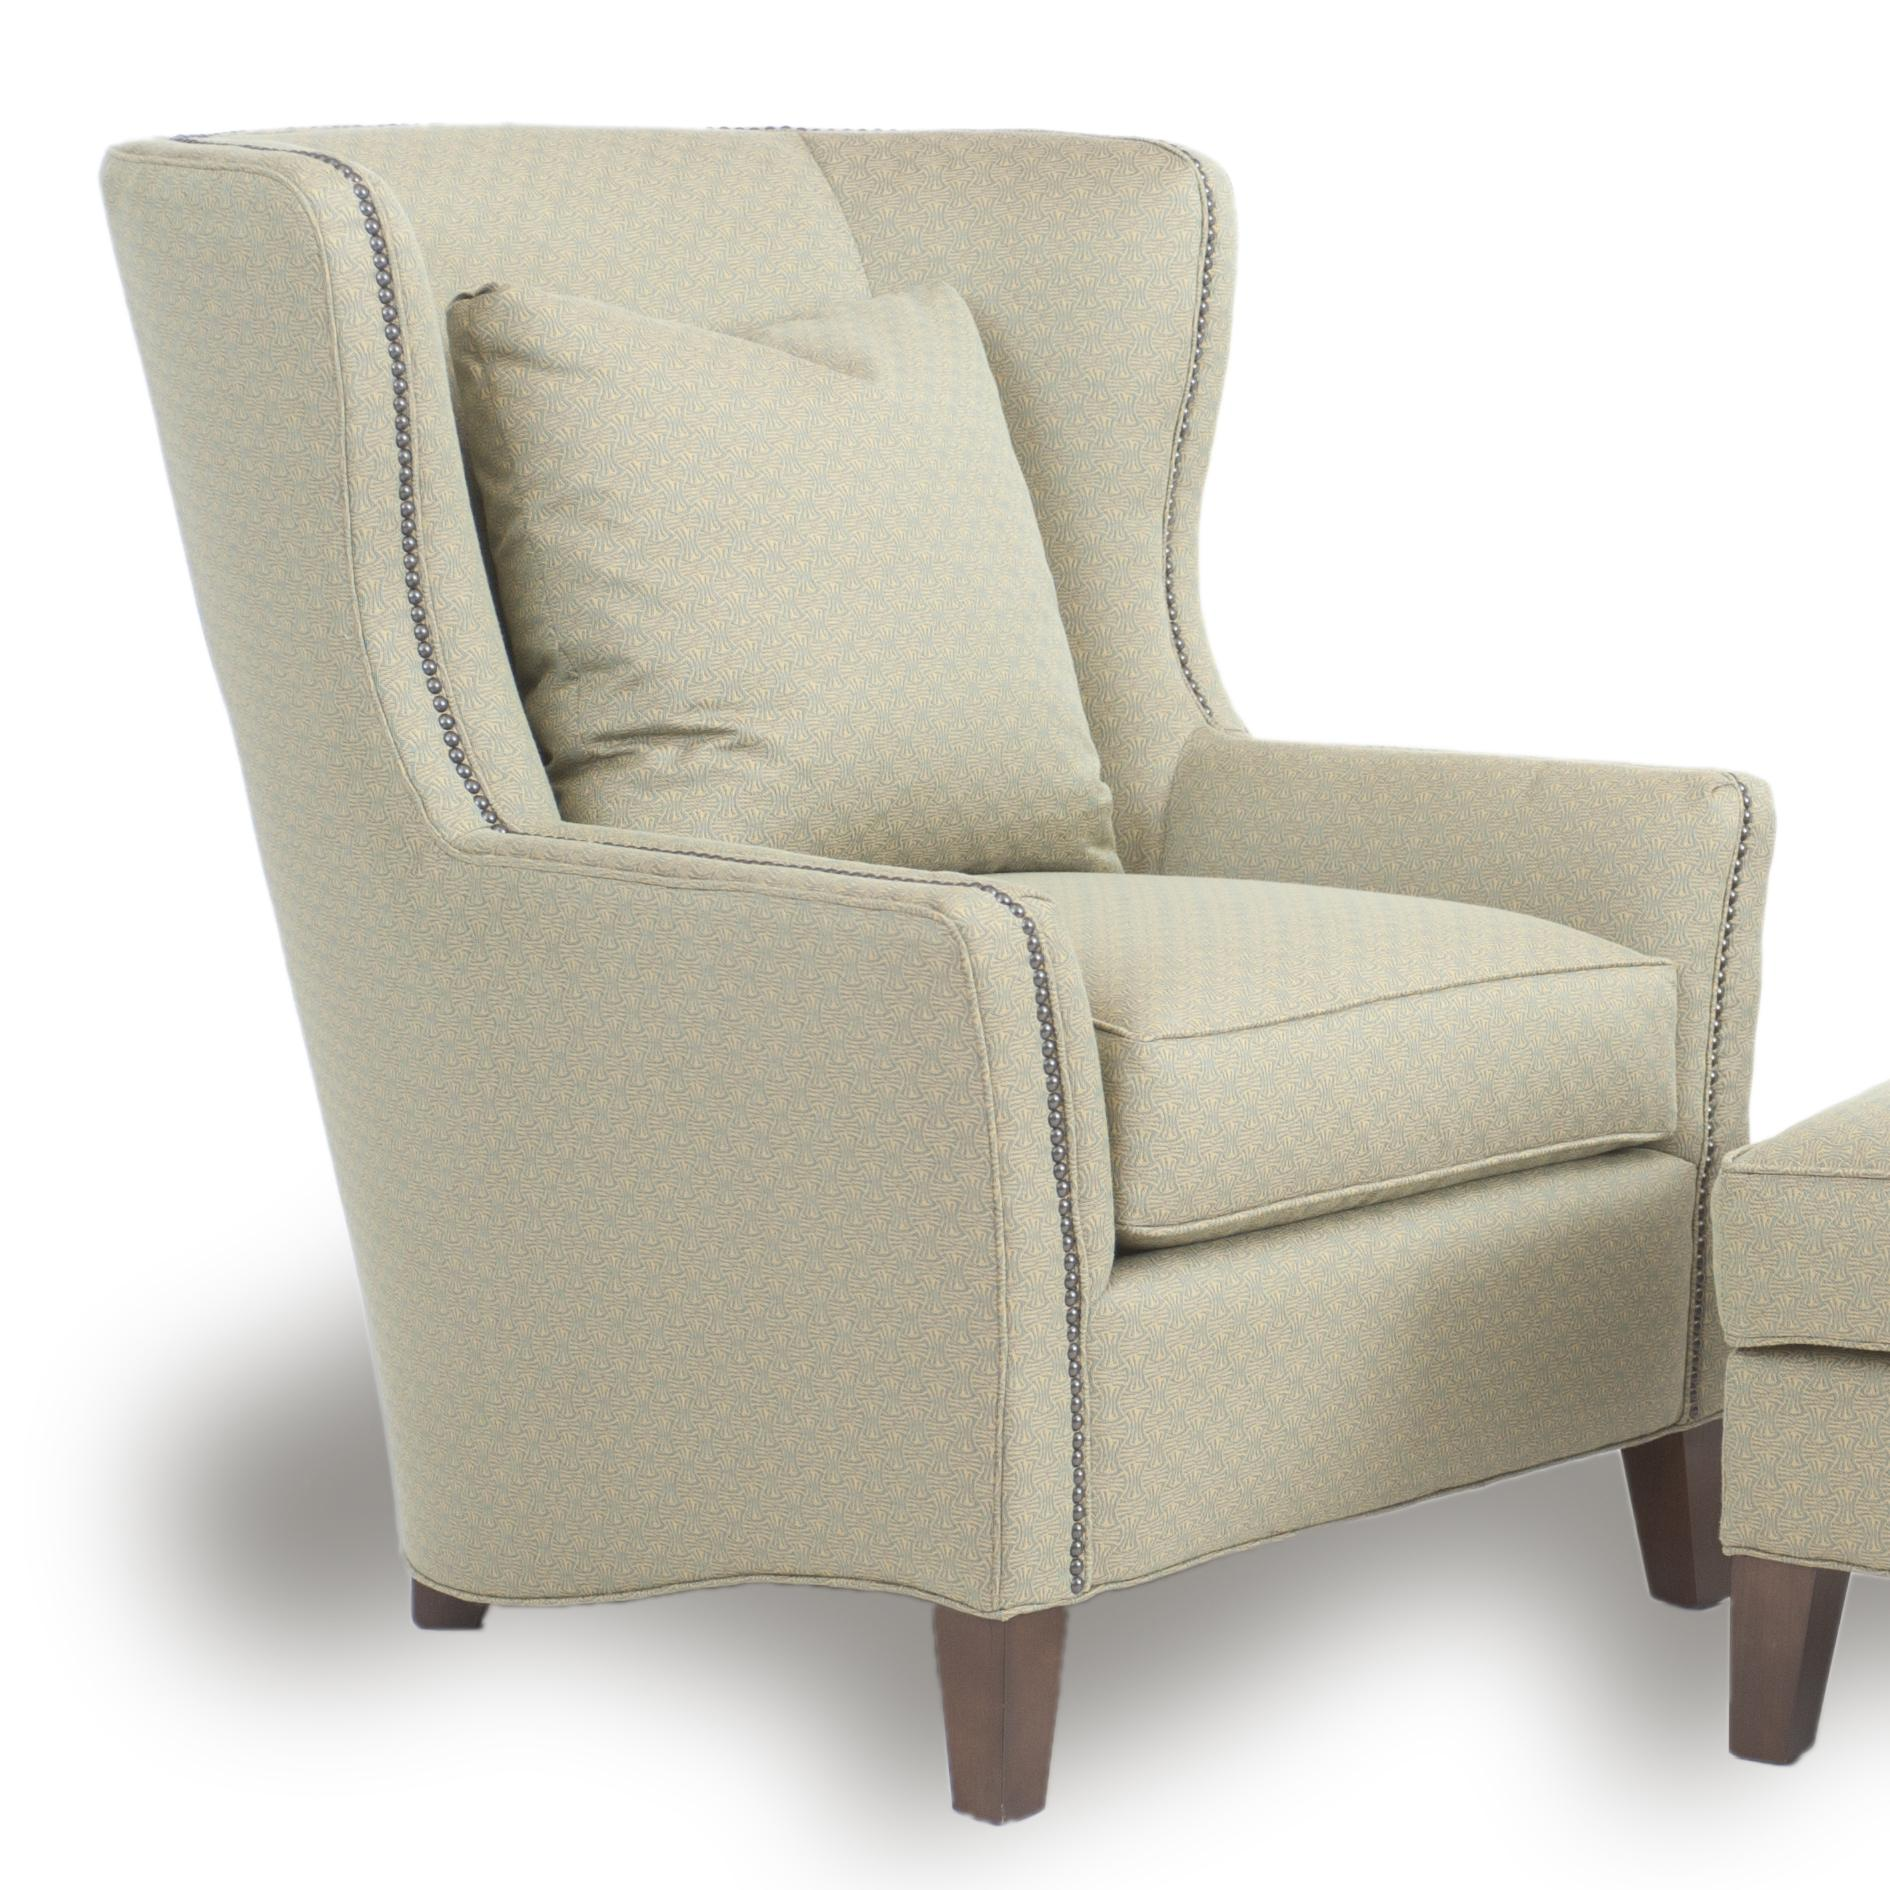 Accent Chairs and Ottomans SB Upholstered Wingback Chair by Smith Brothers at Gill Brothers Furniture